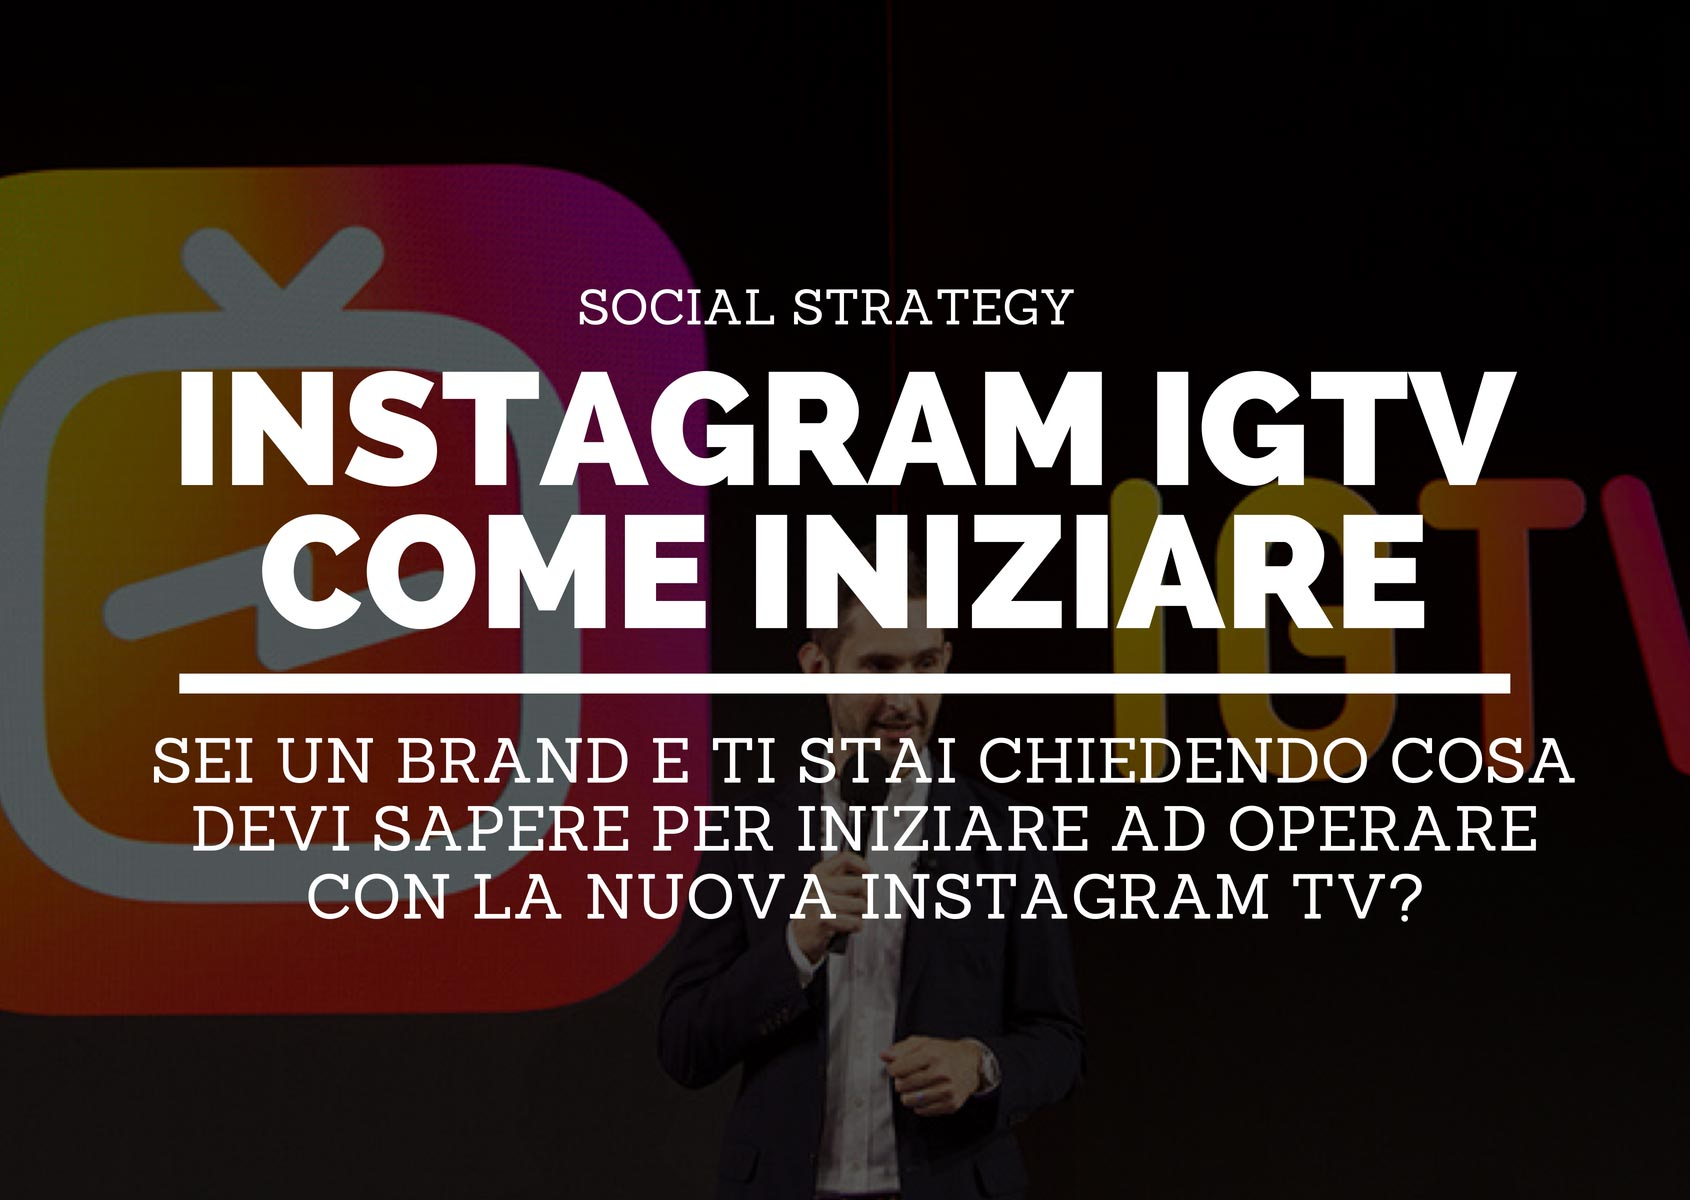 instagram igtv marketing